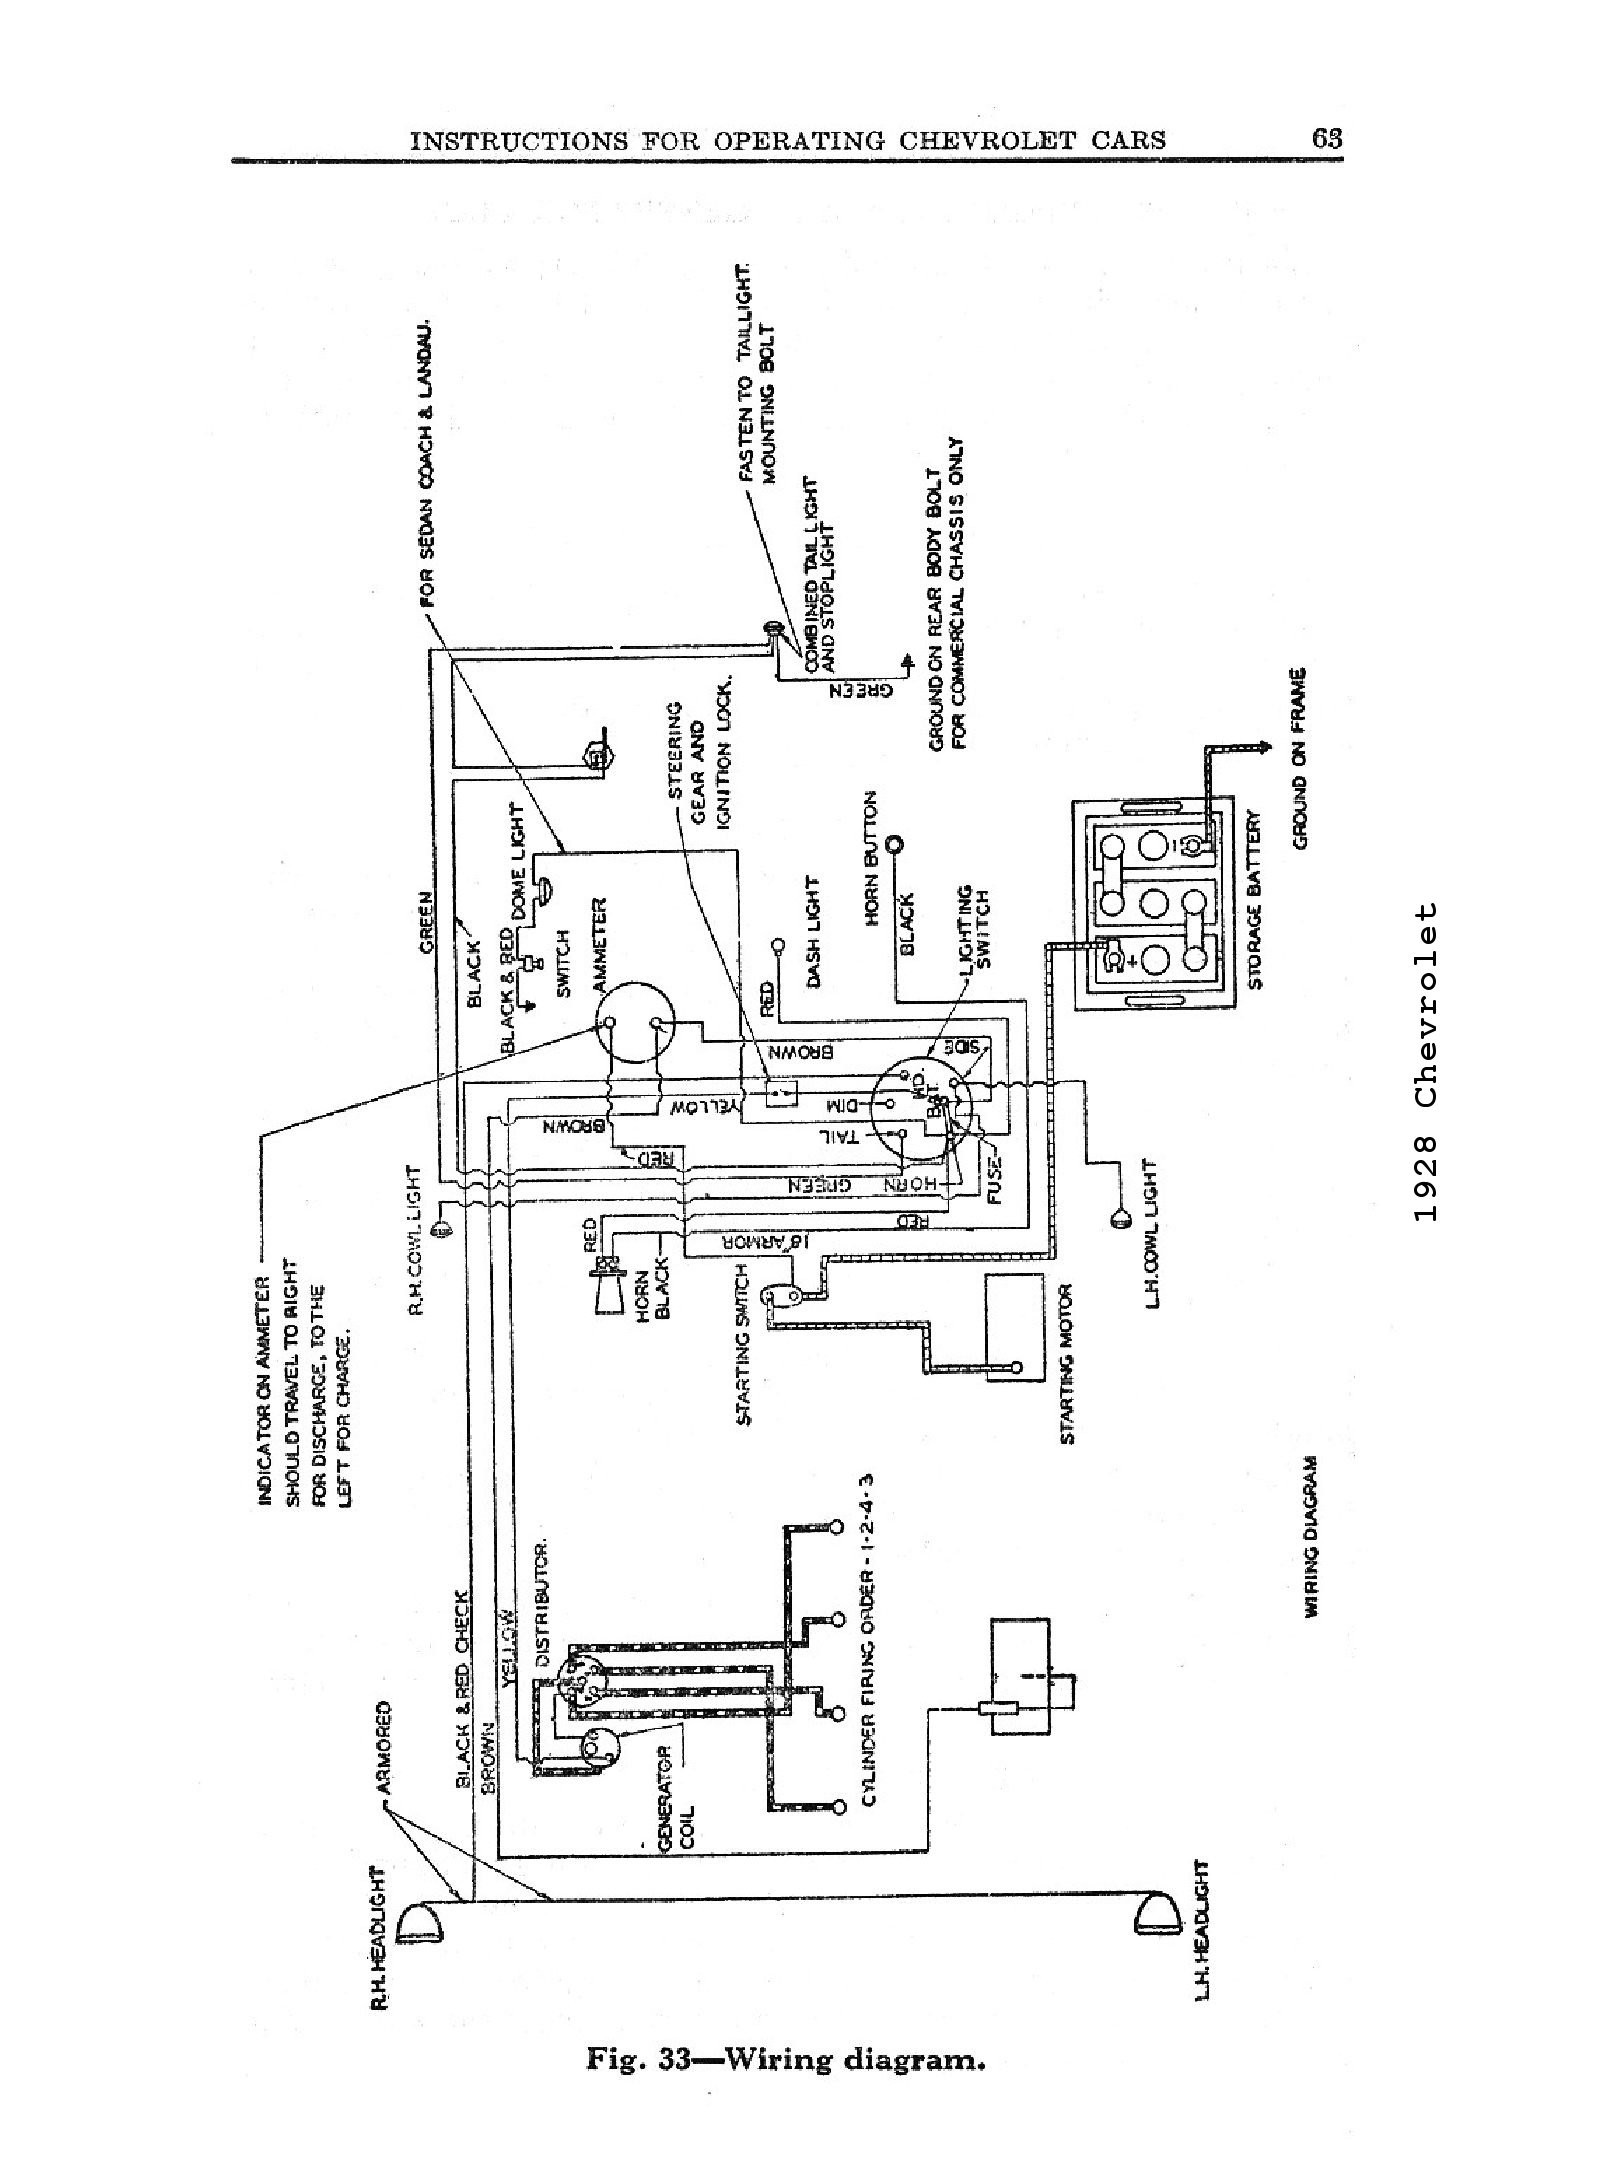 1957 Chevy Truck Wiring Diagram Chevy Wiring Diagrams Of 1957 Chevy Truck Wiring Diagram